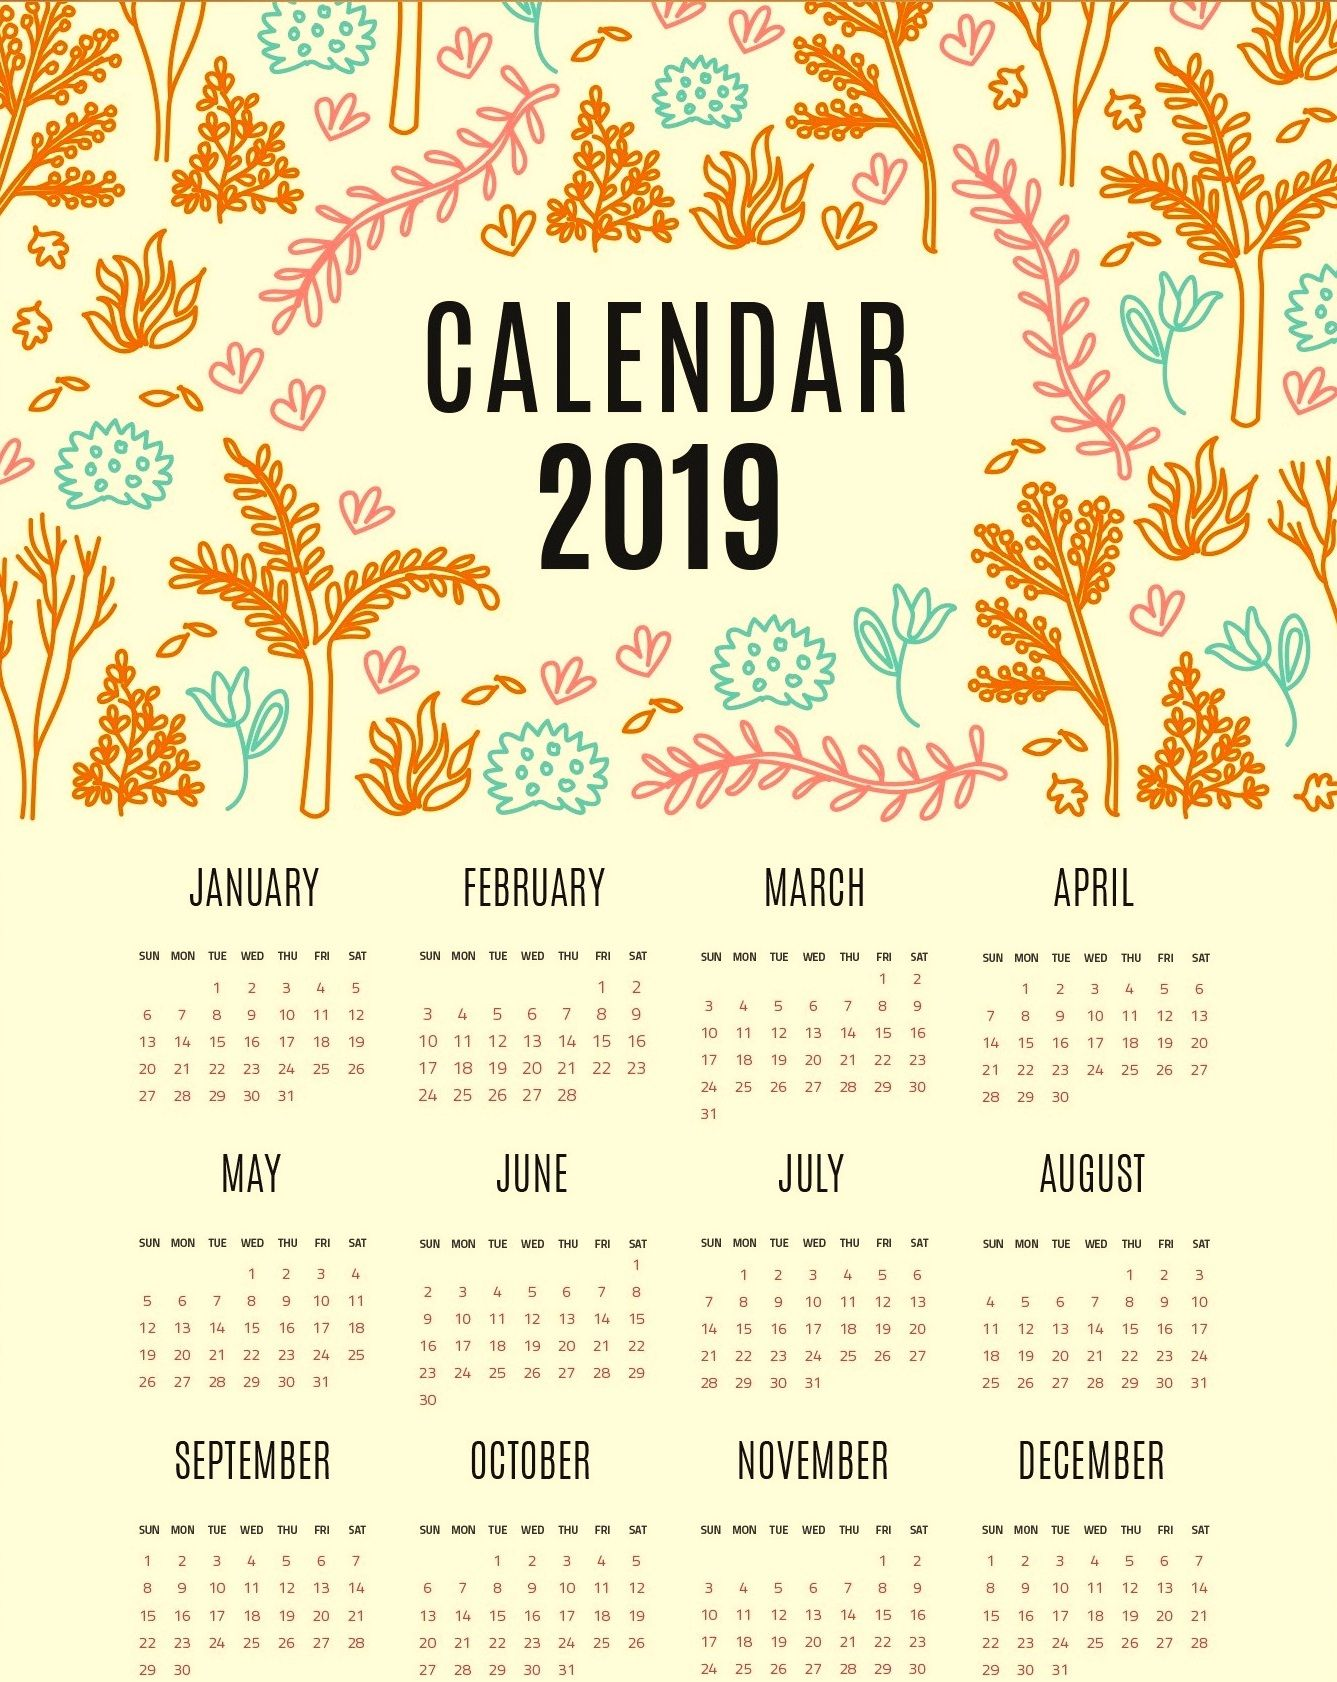 2019 calendar united kingdom wallpaper 2019 calendar calendar wallpaper desktop computers united kingdom